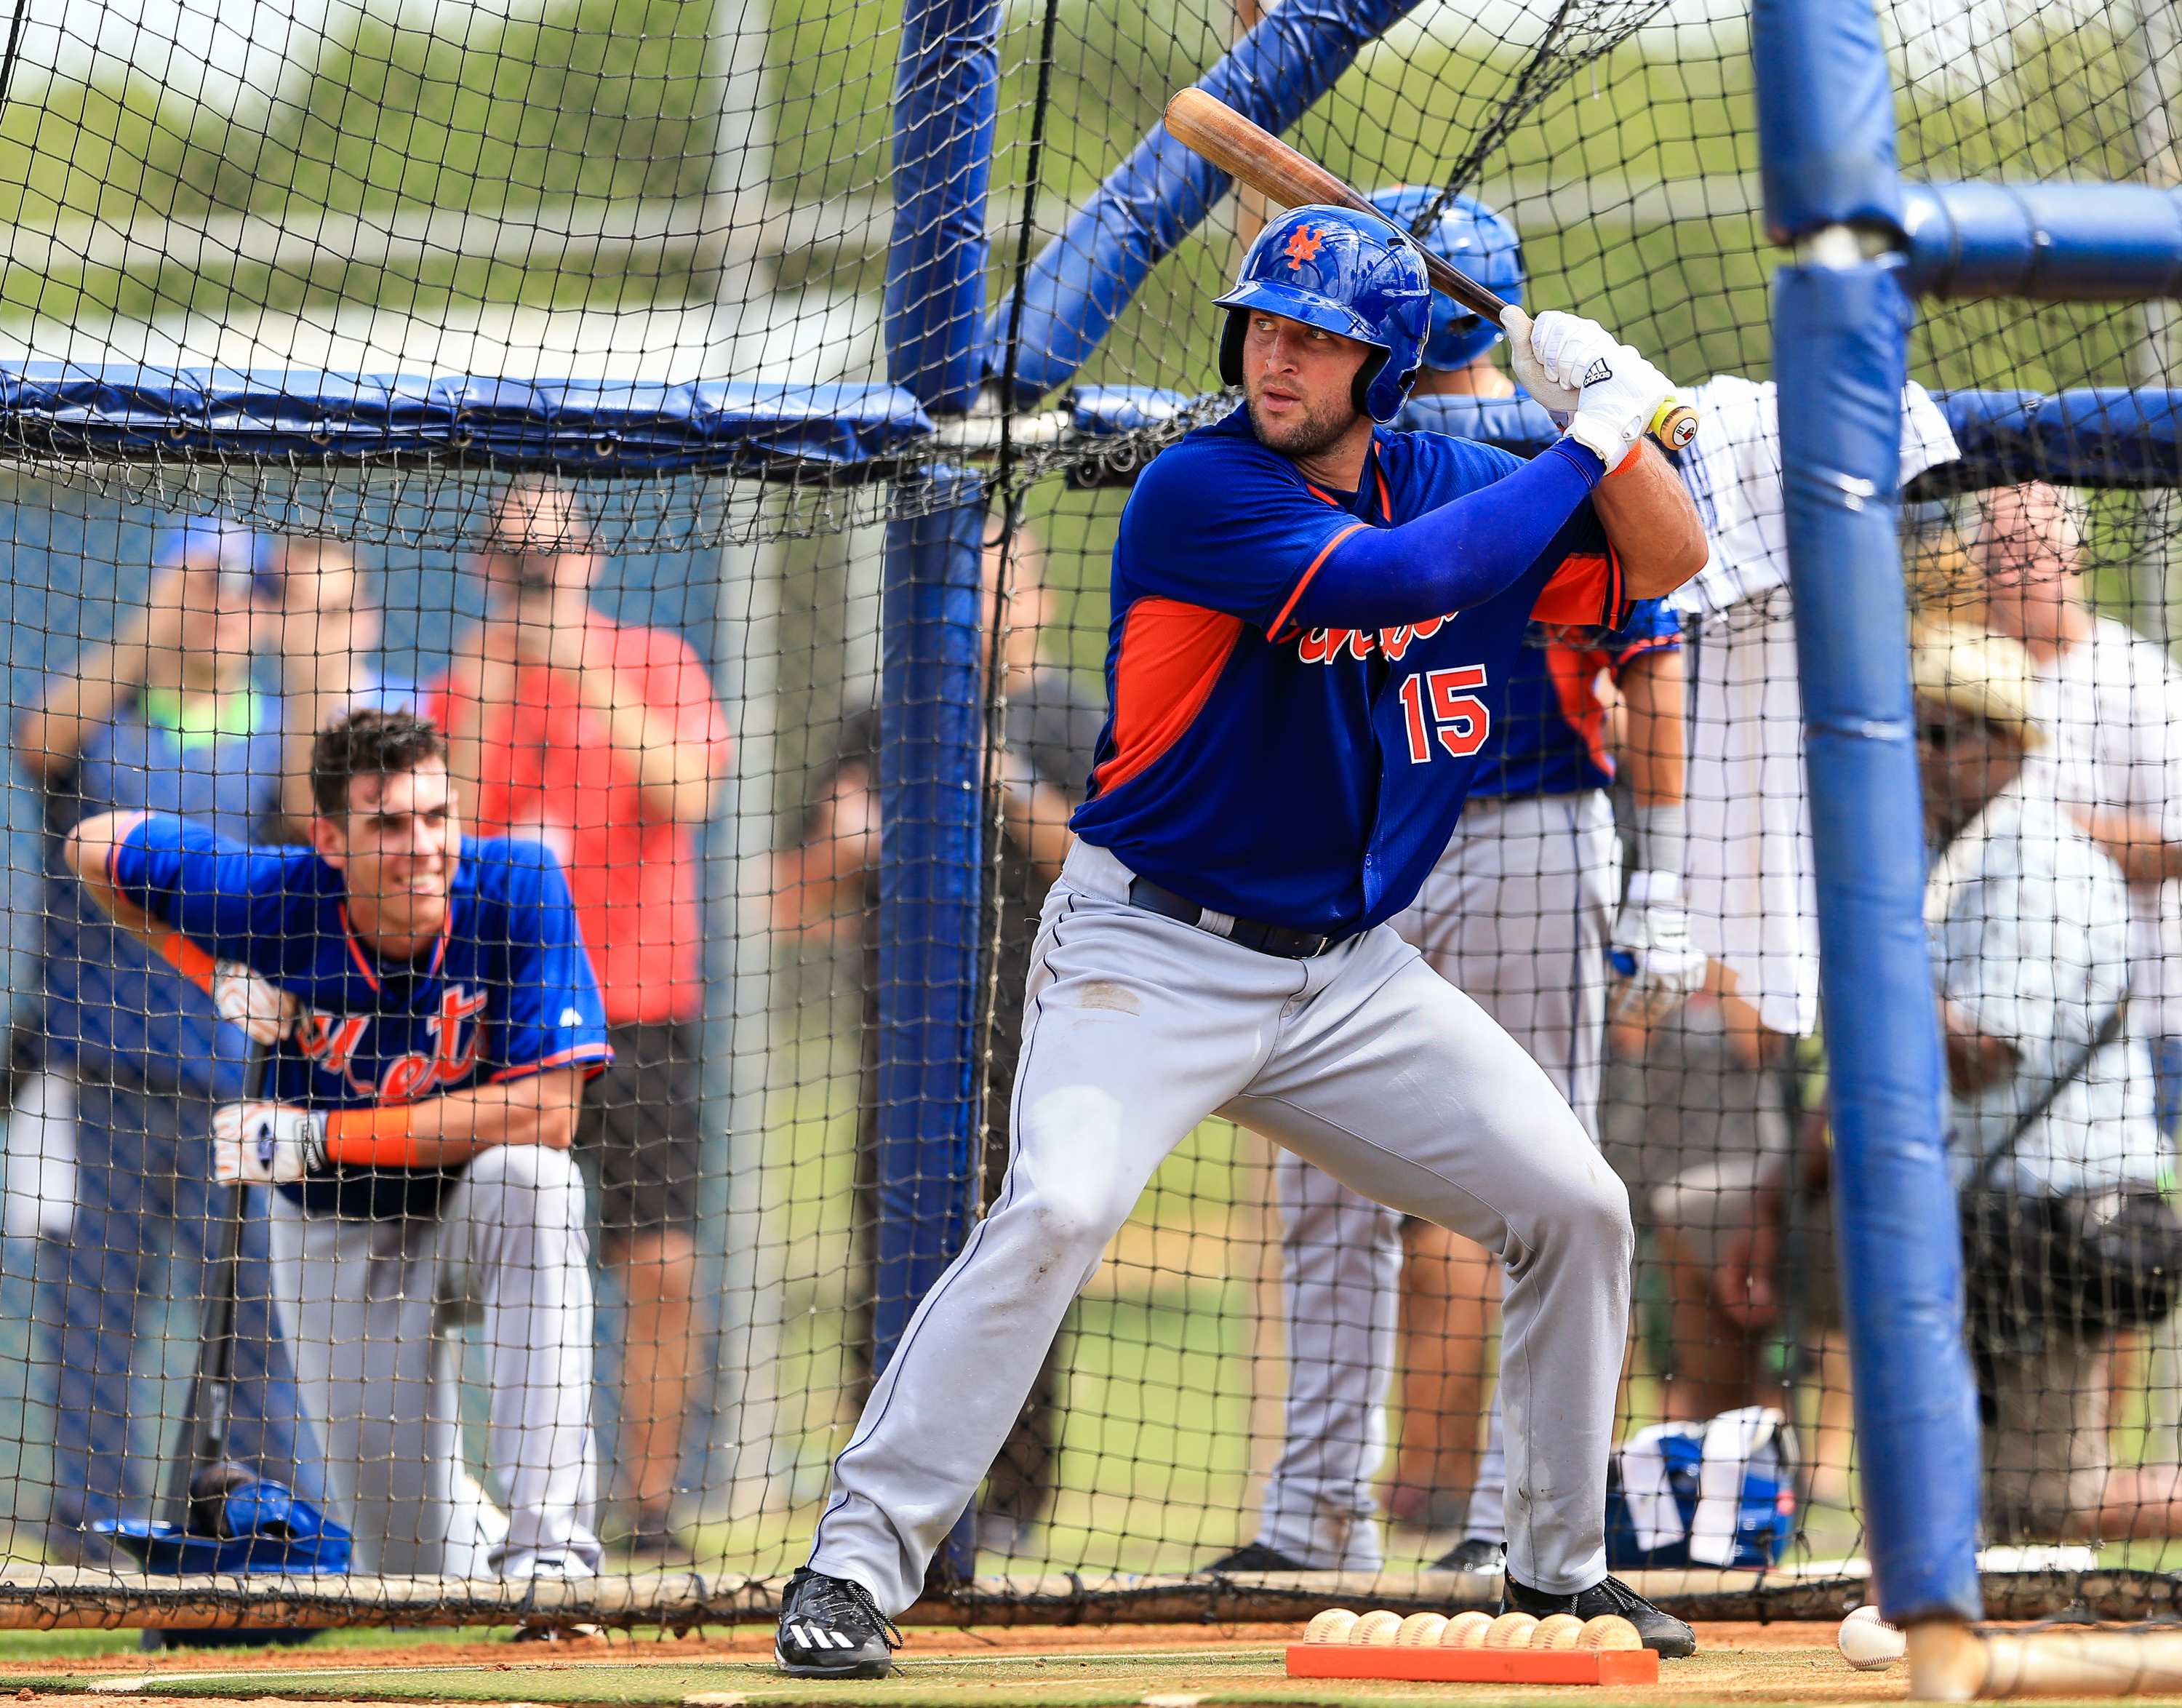 Tim Tebow #15 of the New York Mets works out at an instructional league day at Tradition Field on September 20, 2016 in Port St. Lucie, Florida. (Photo by Rob Foldy/Getty Images)